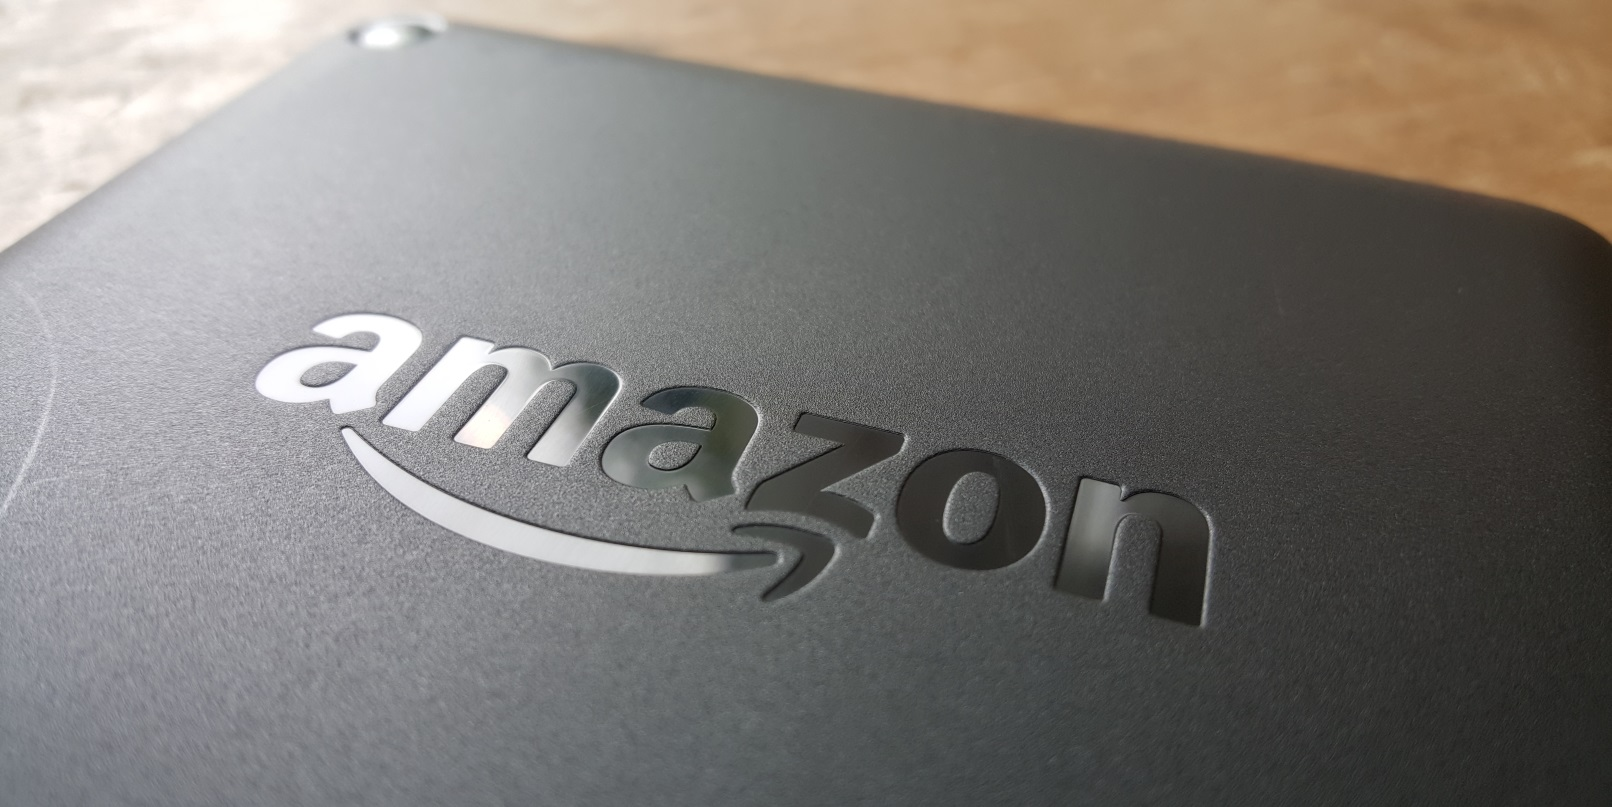 Amazon reportedly interested in opening up to 400 bookstores nationwide